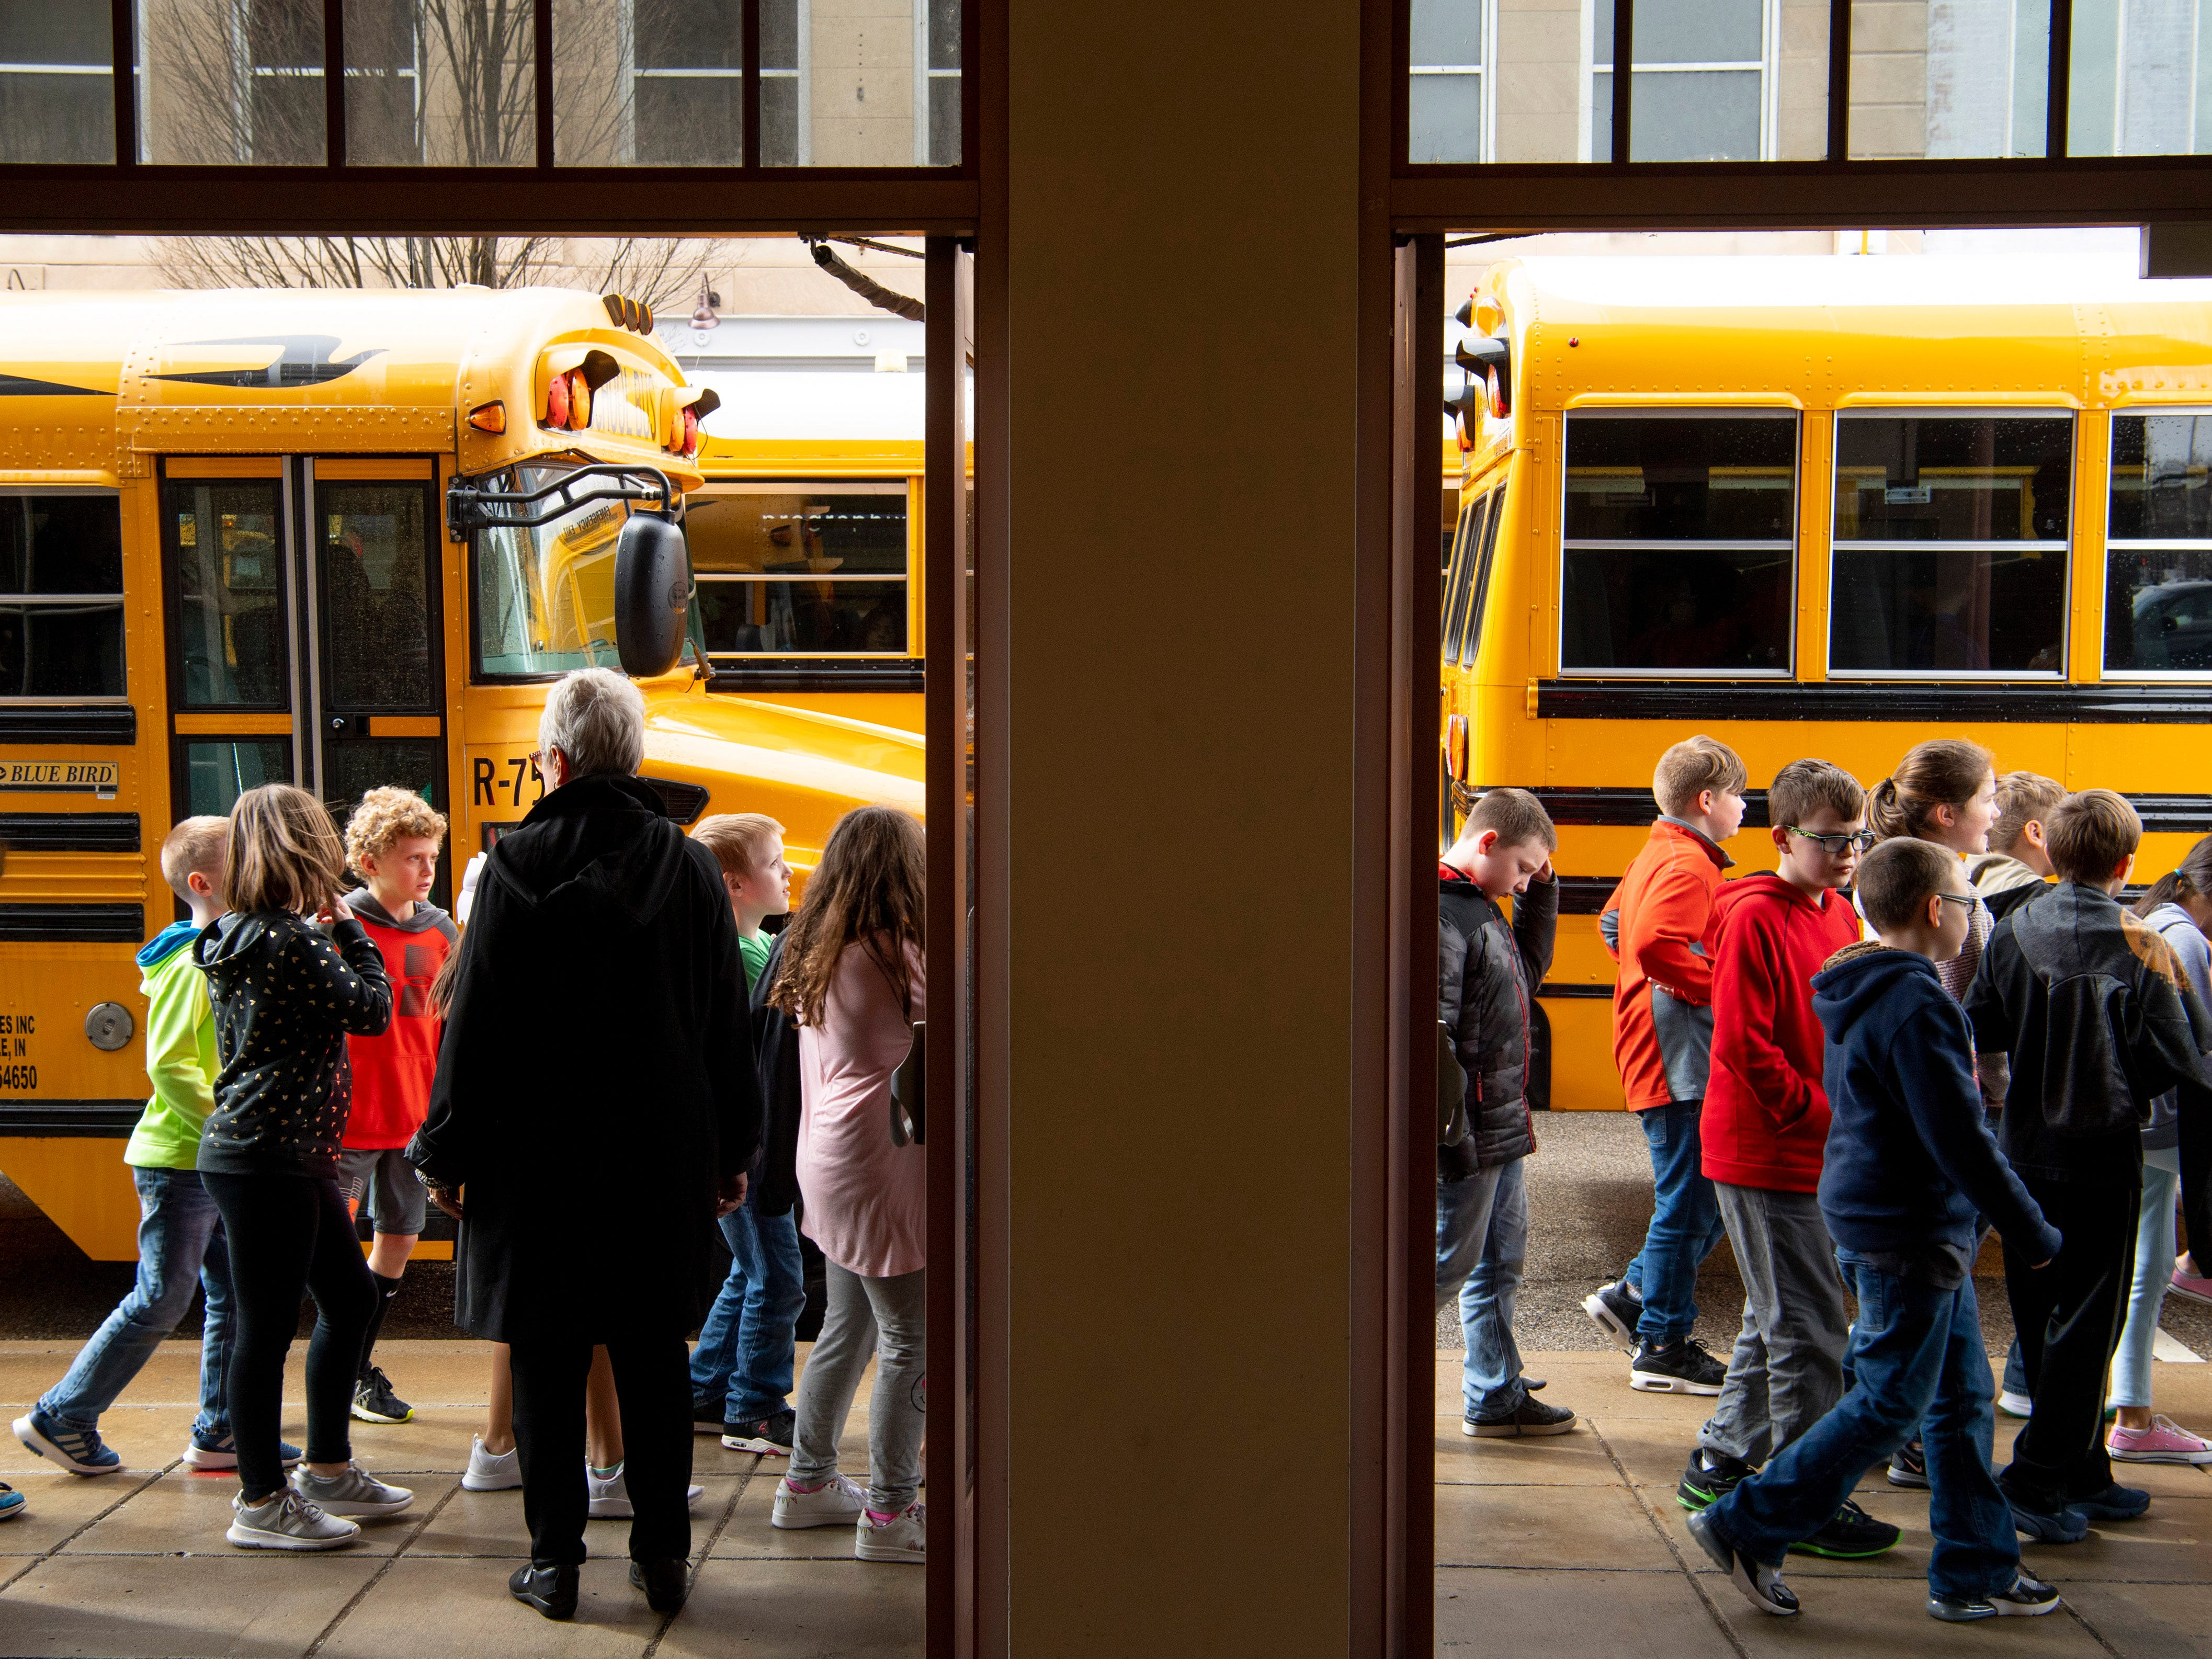 Area elementary school students head for their buses after spending the last 3 1/2 hours at The Victory Thursday afternoon. The kids arrived for the 9 a.m. performance of the Young People's Concerts performed by the Evansville Philharmonic Orchestra. A series of tornado warnings necessitated the students take shelter in the building's basement and auditorium.